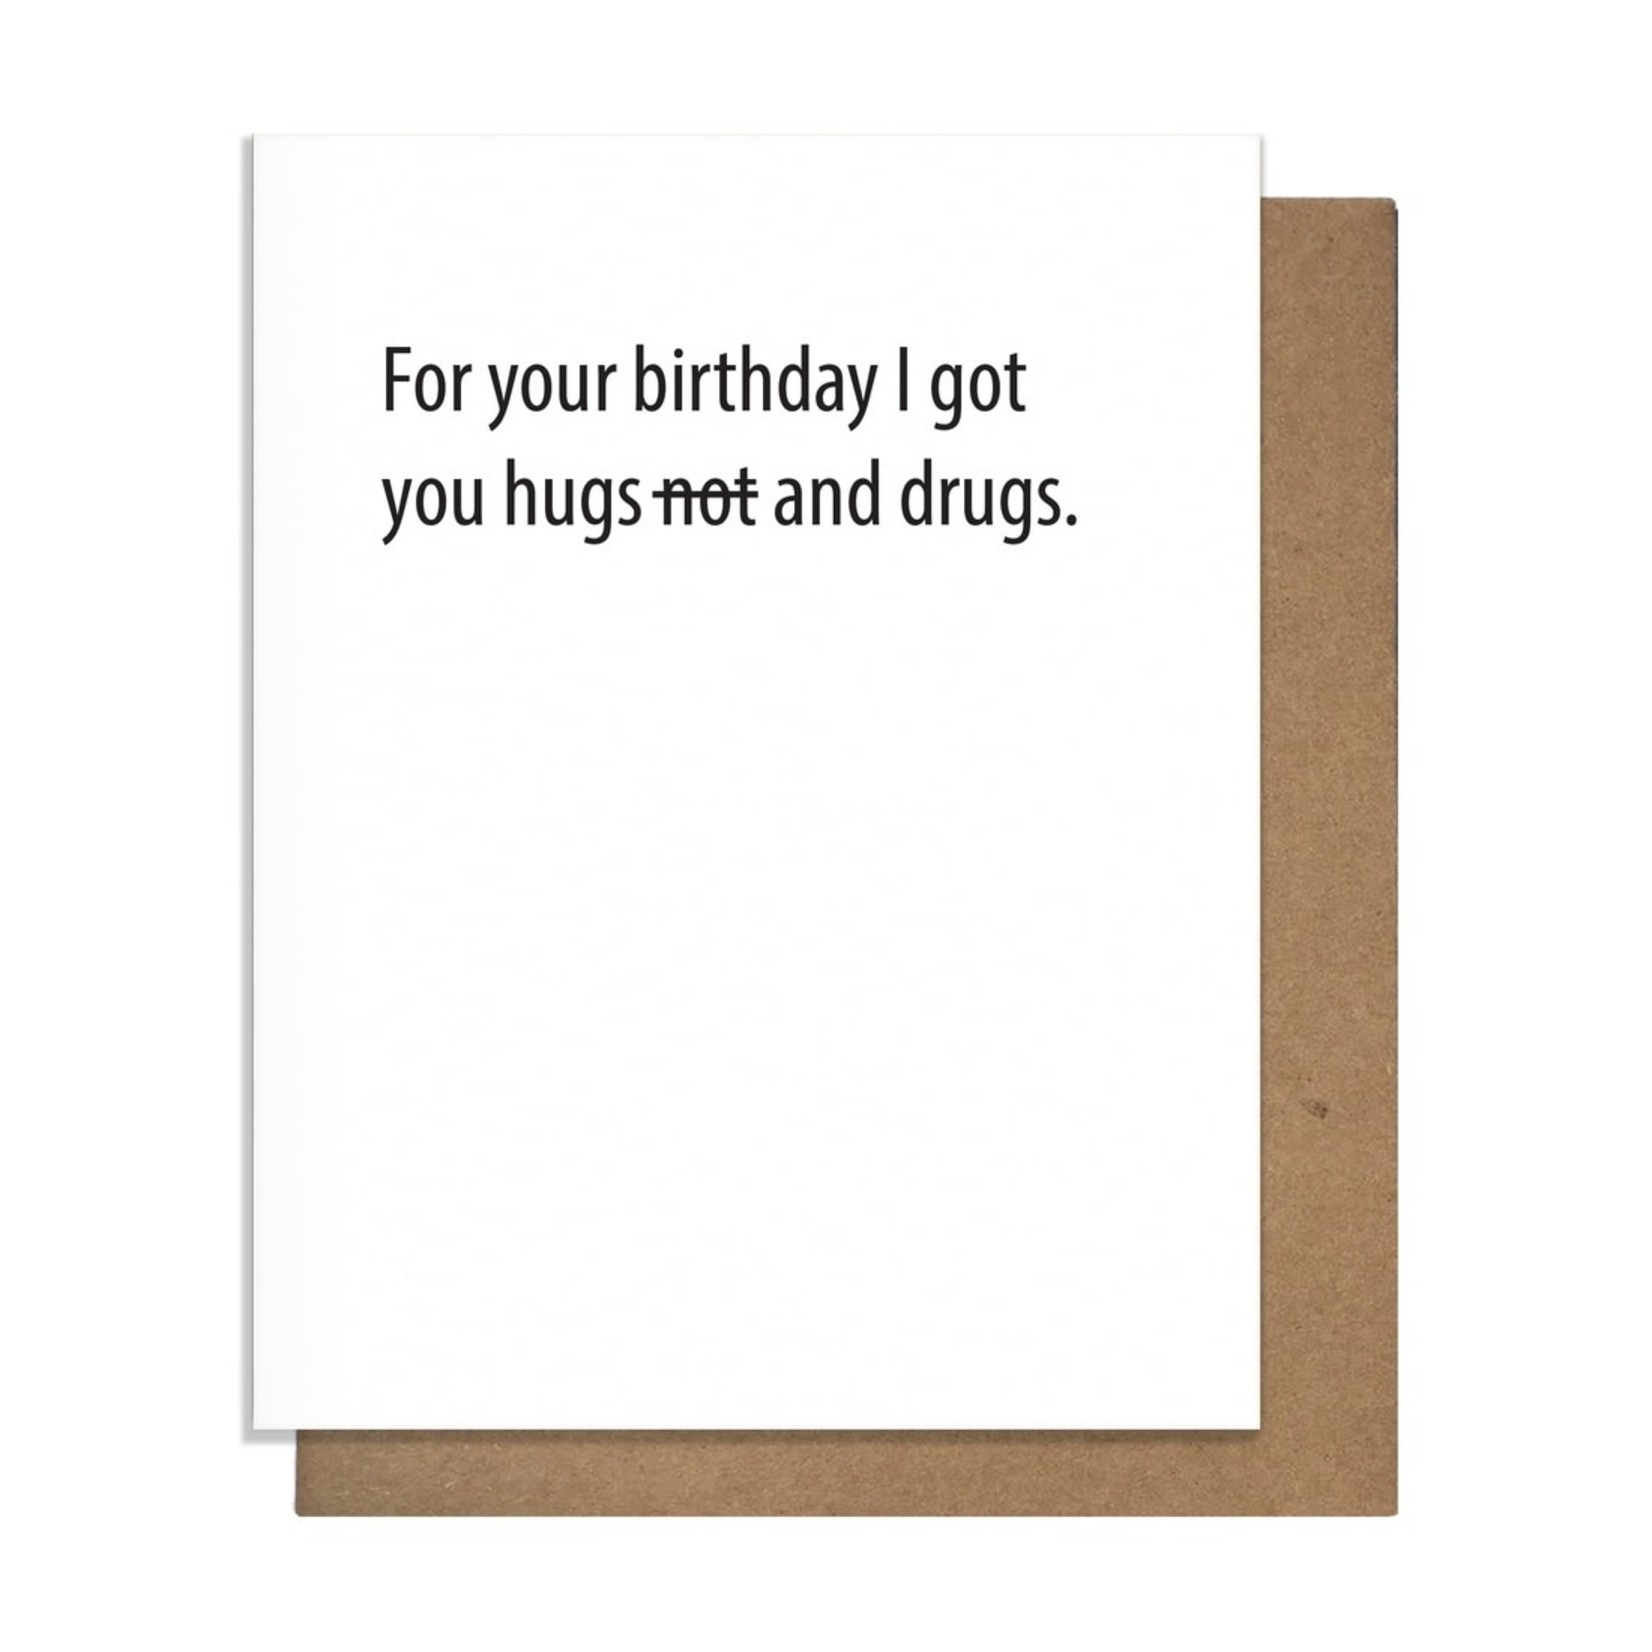 Pretty Alright Goods Card - For Your Birthday I Got You Hugs And Drugs